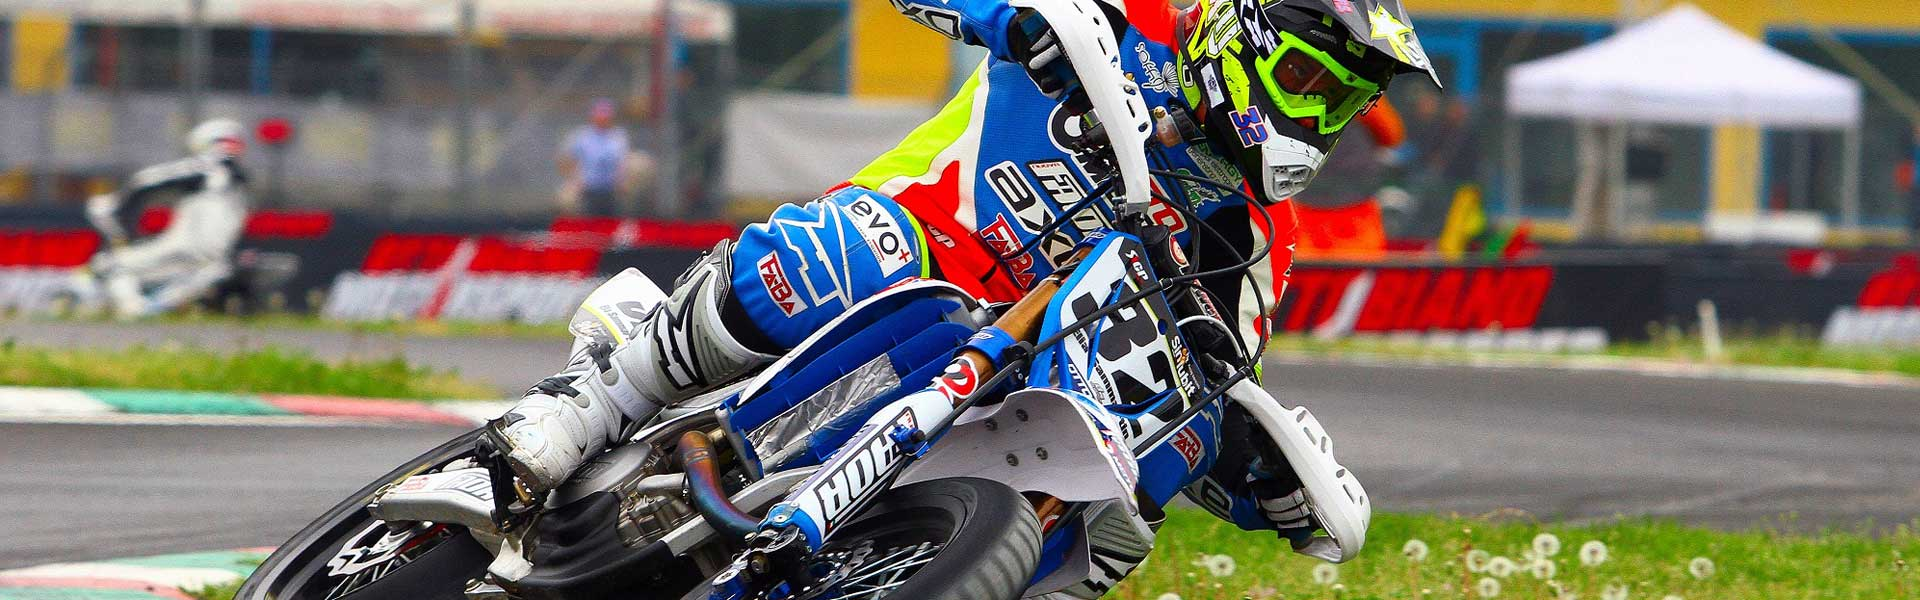 Supermotard bij SMXRacing